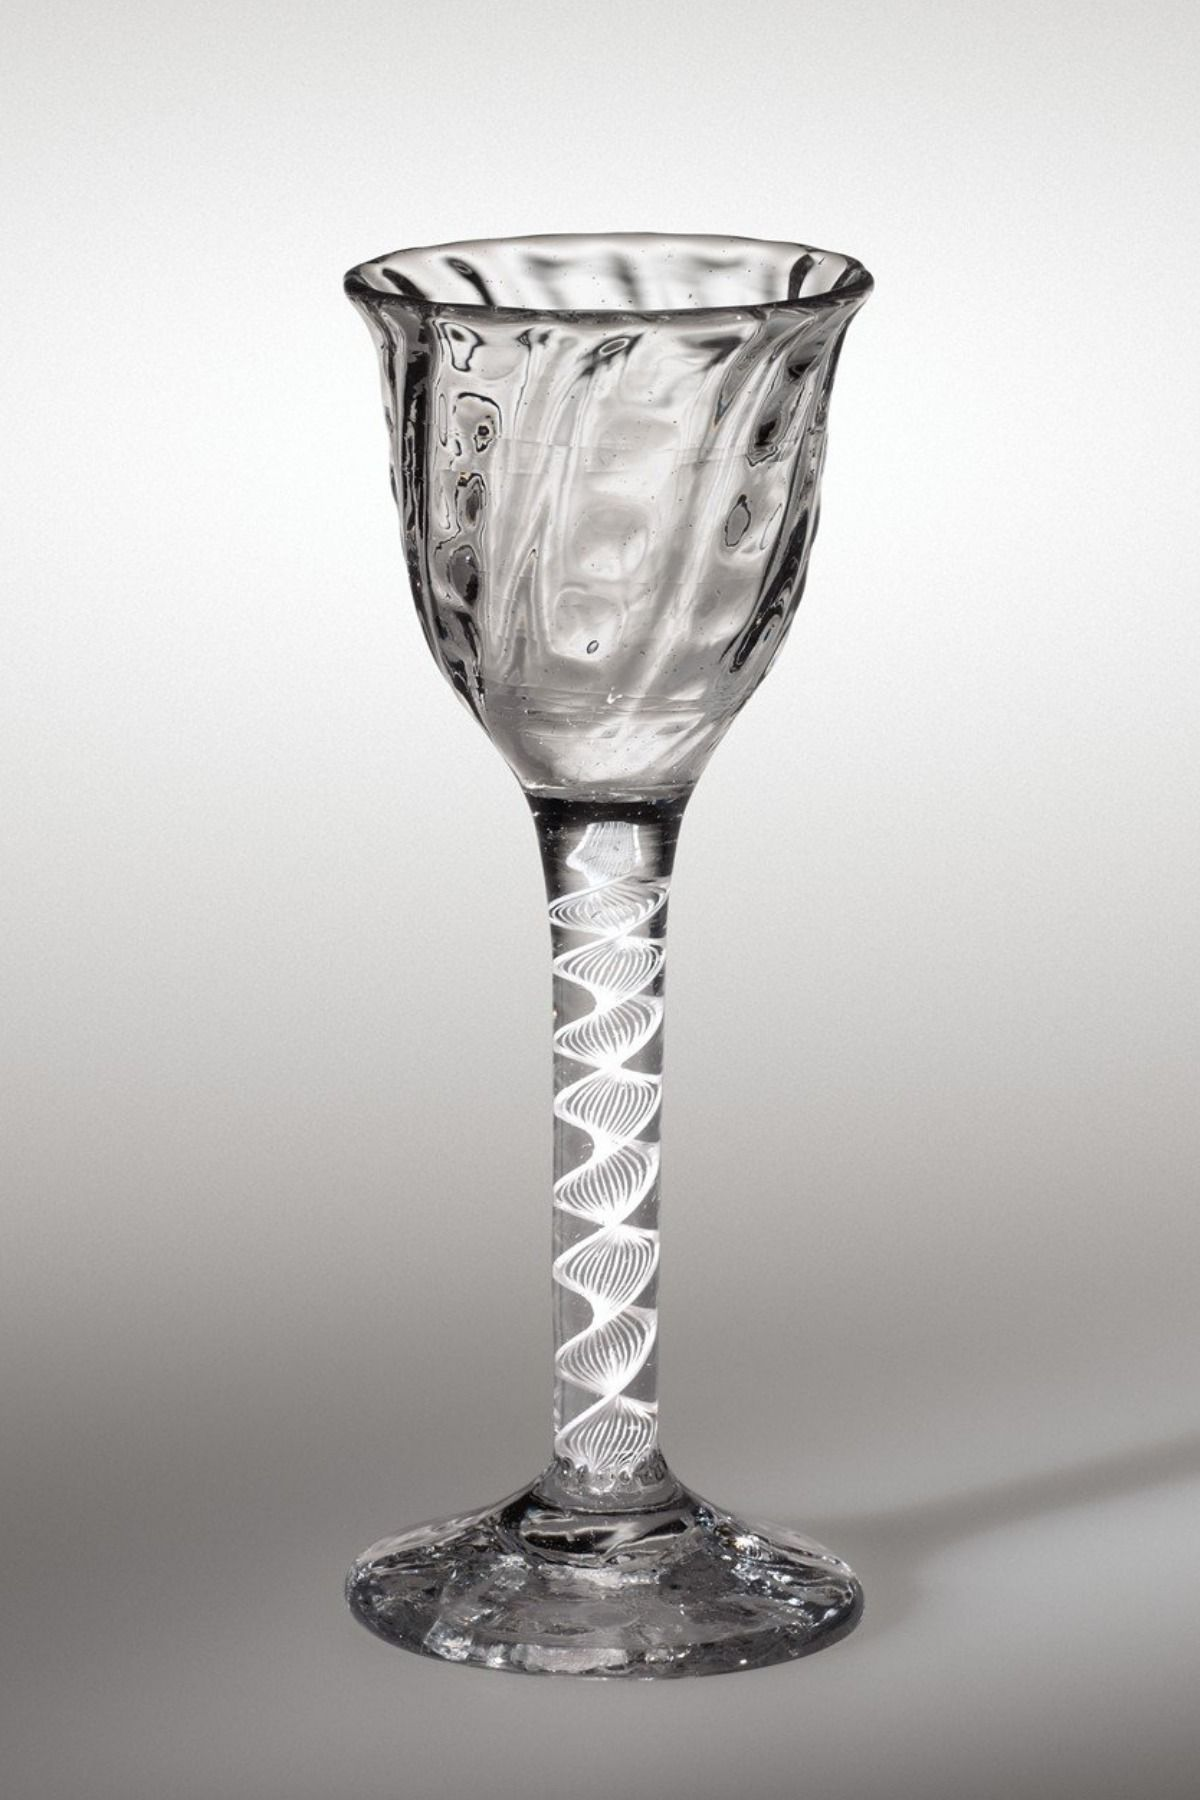 Rare Wine Glass from 1760 to be Offered At Bonhams sale